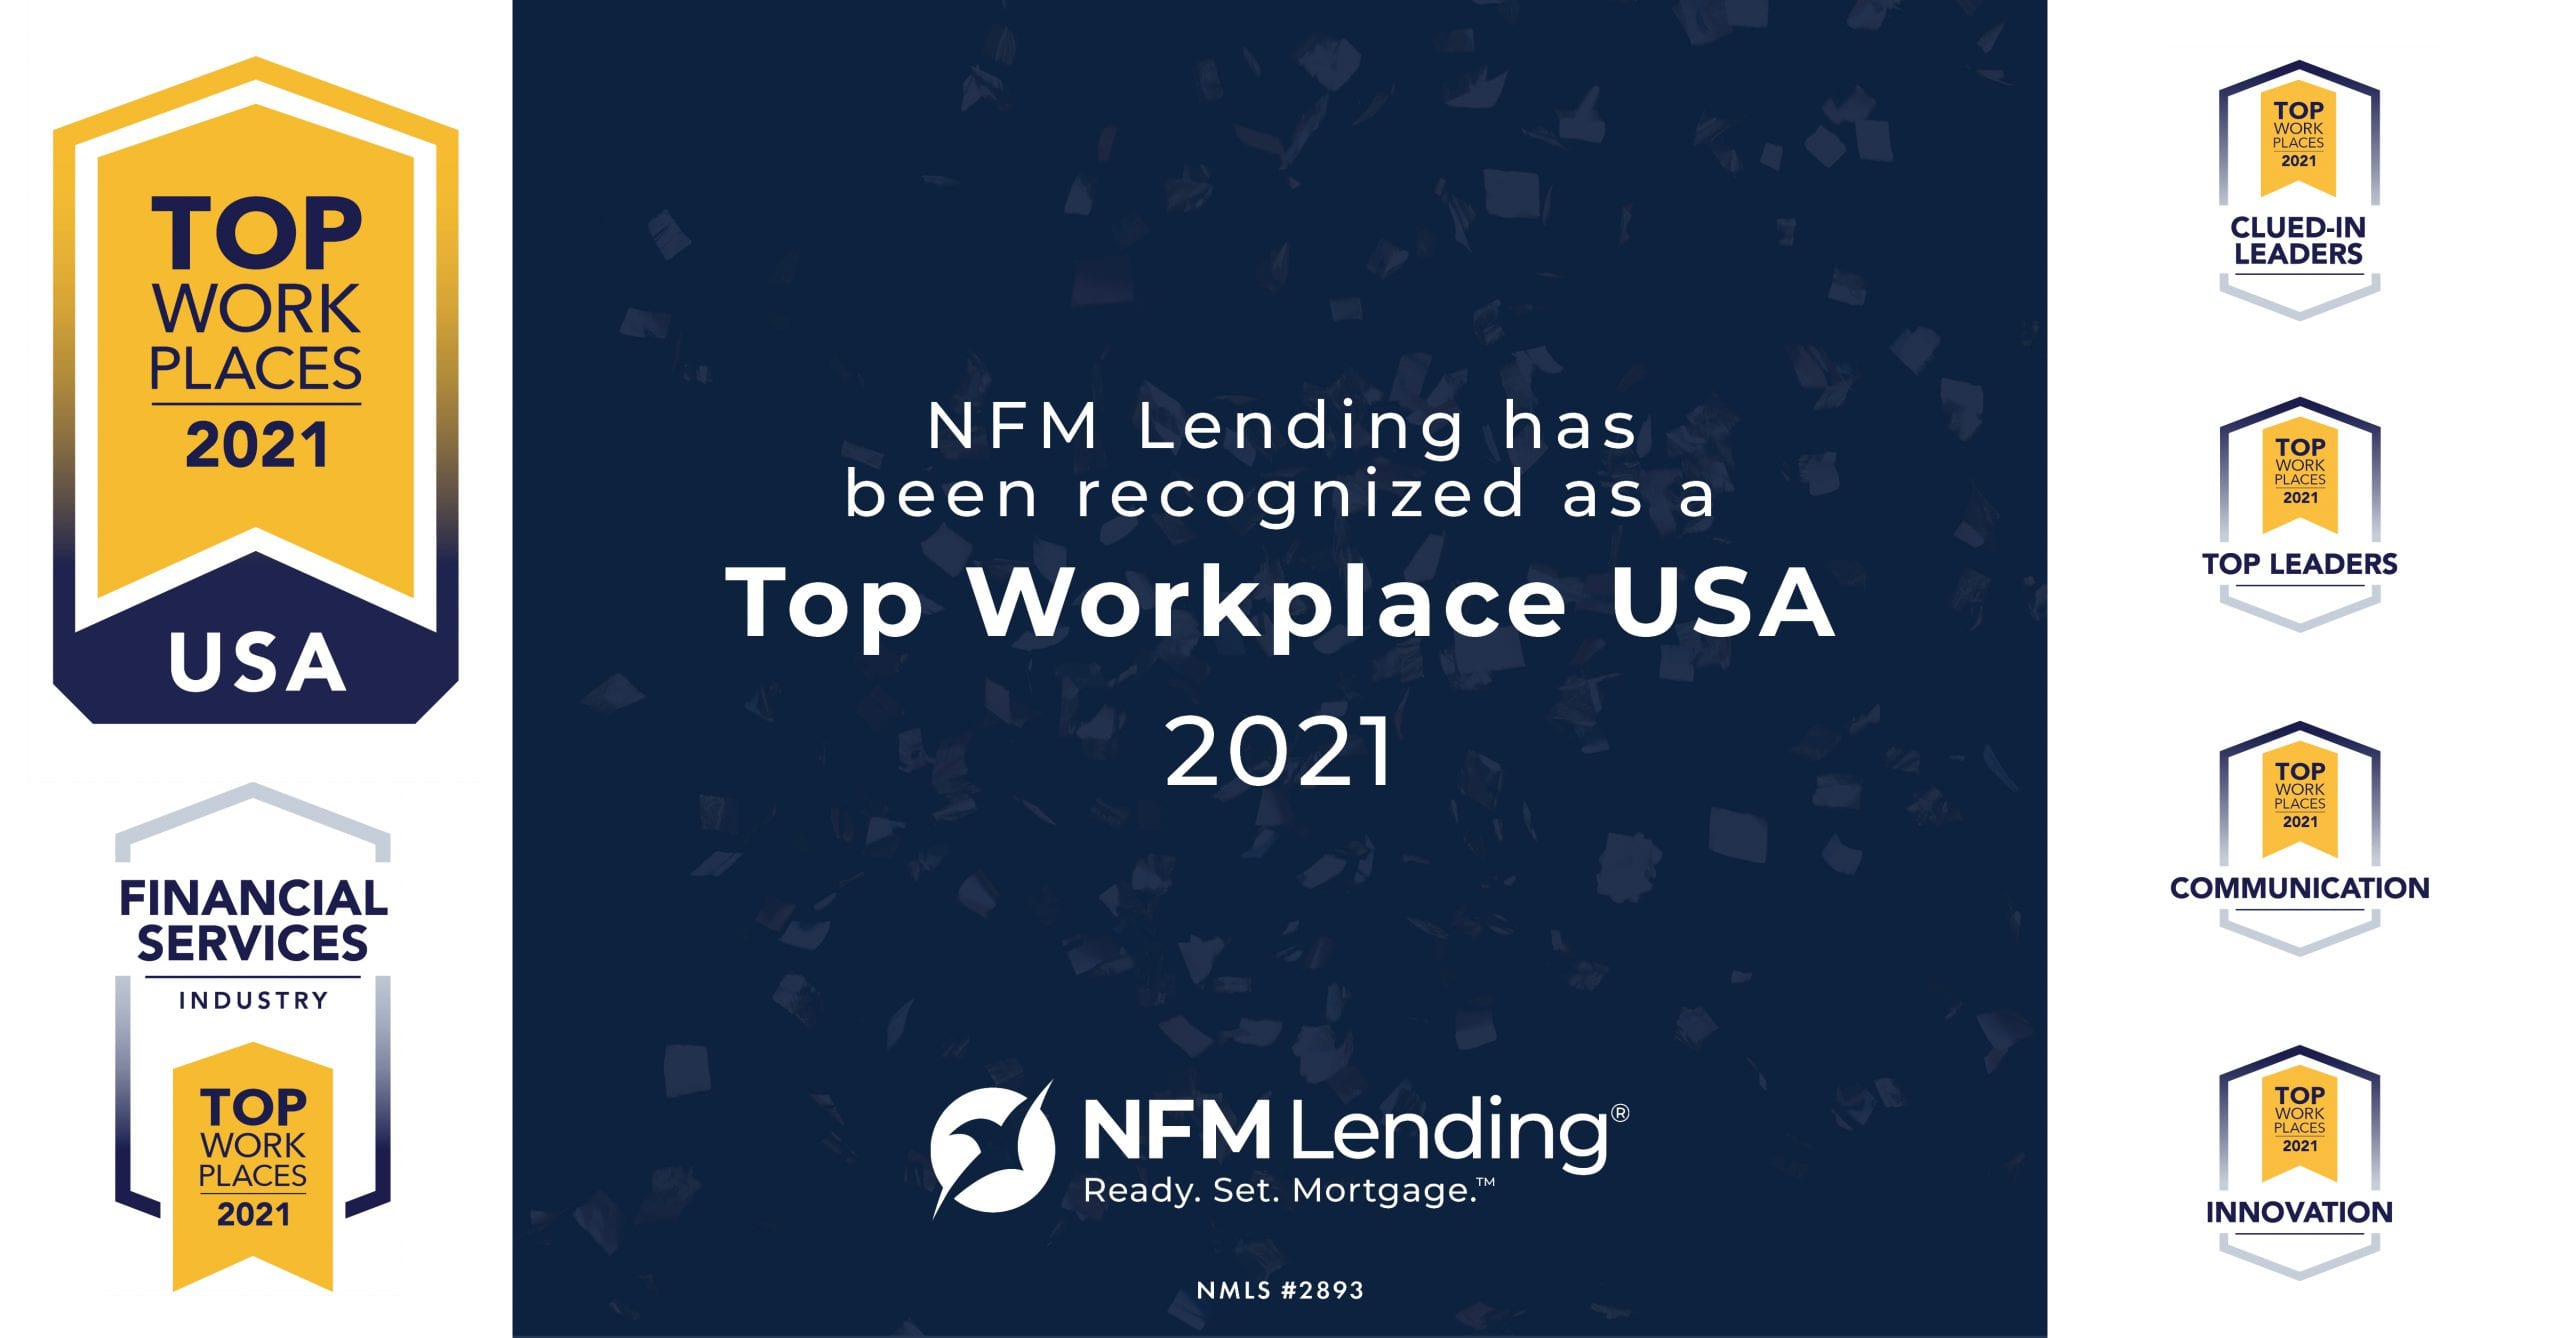 Top Workplace USA 2021